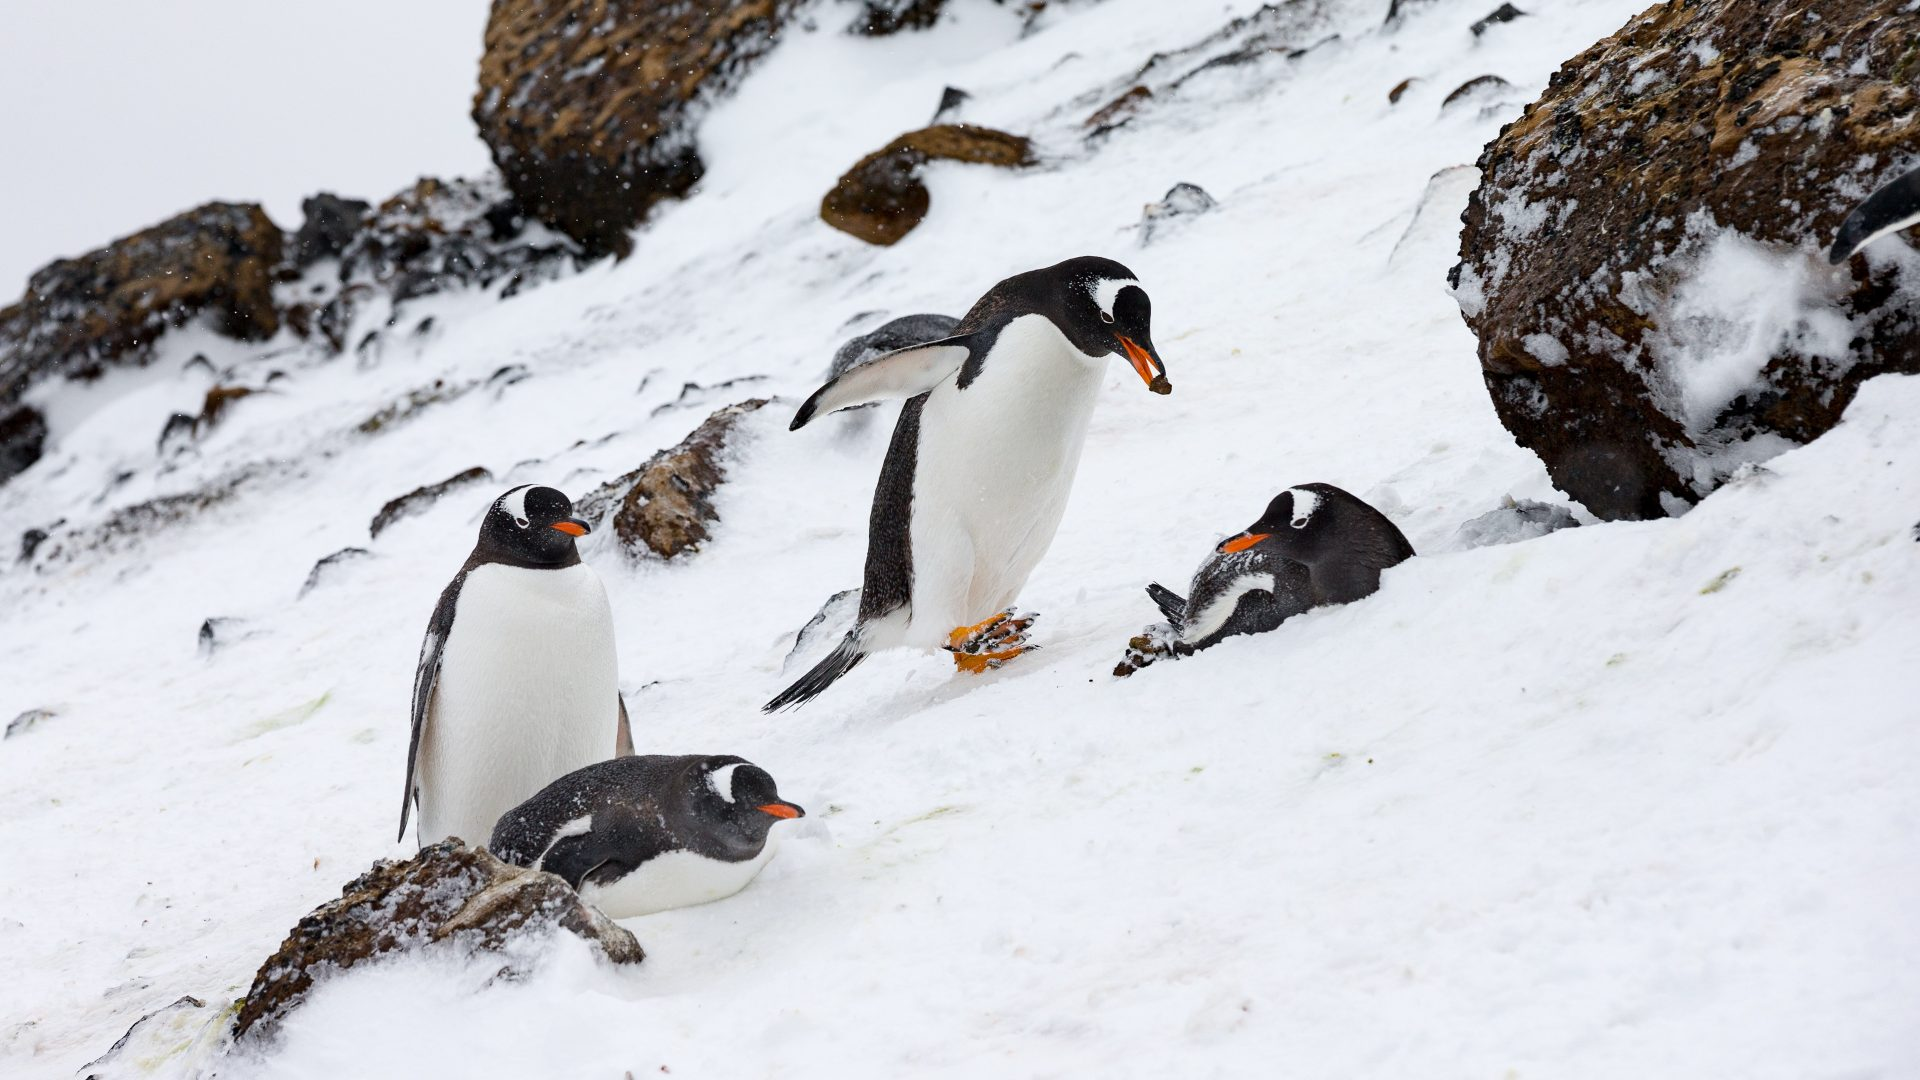 Penguins play in the snow in Antarctica.